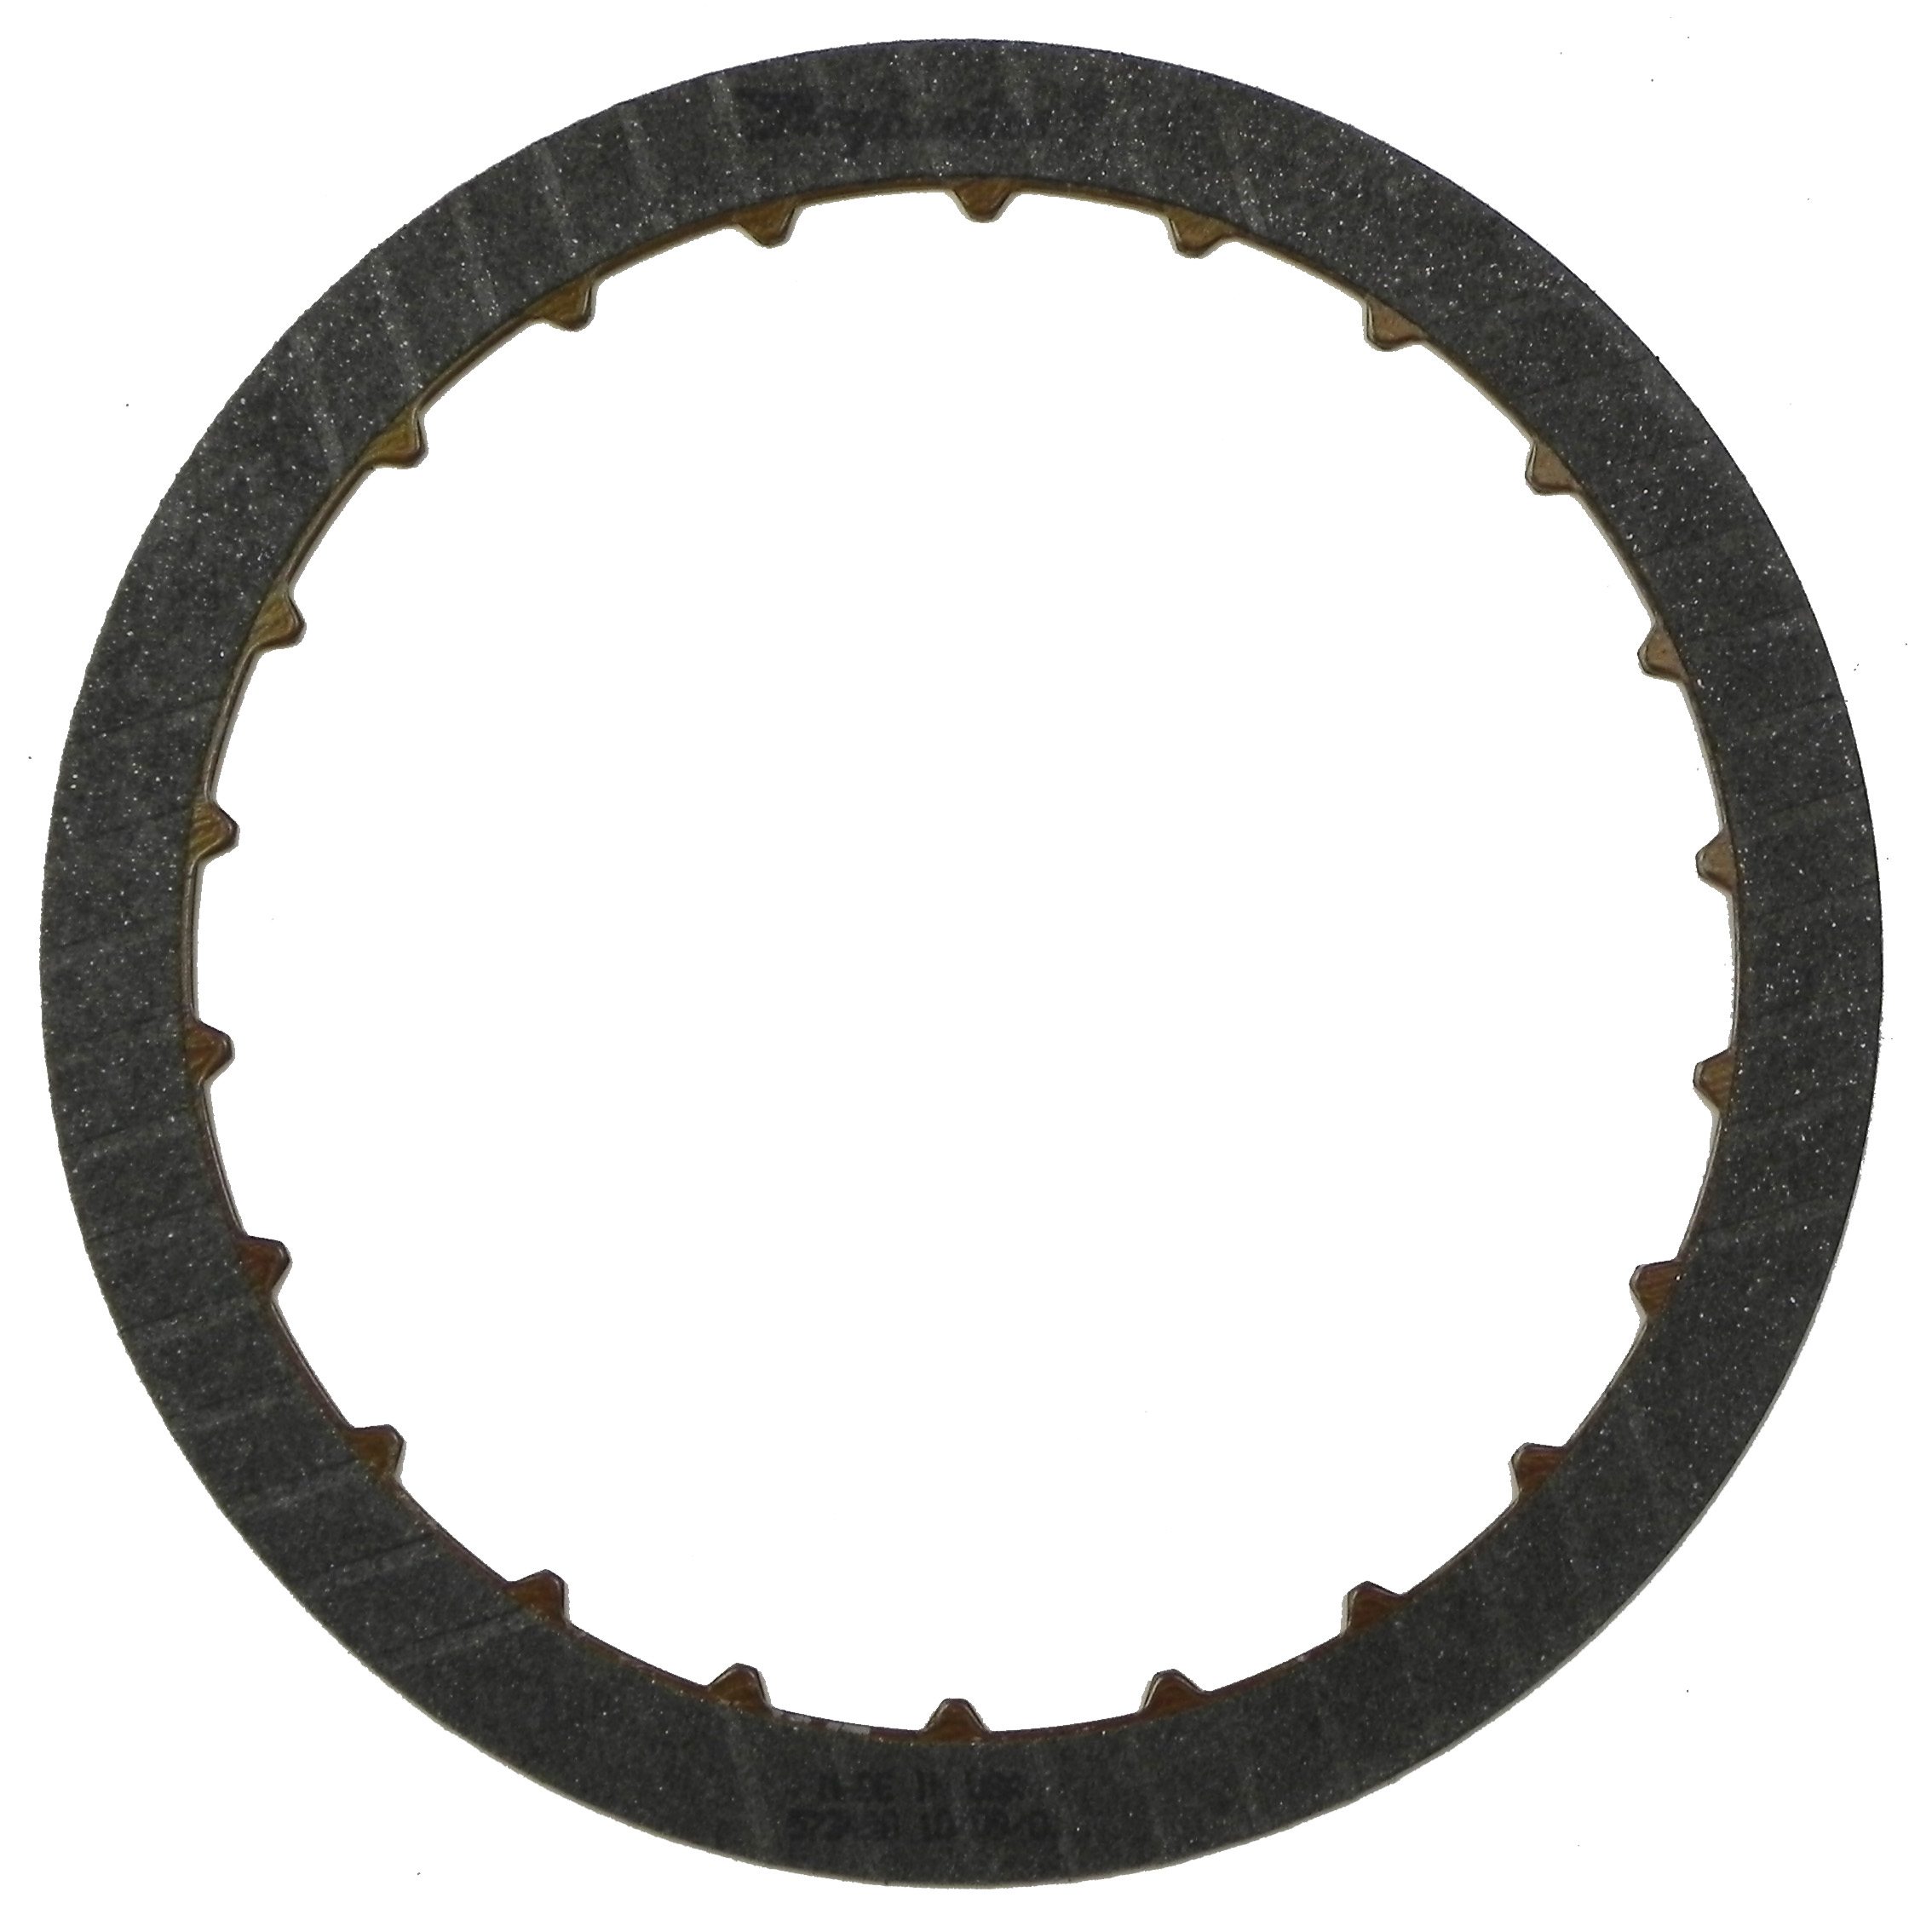 R573490 | 1990-ON Friction Clutch Plate High Energy Overdrive High Energy